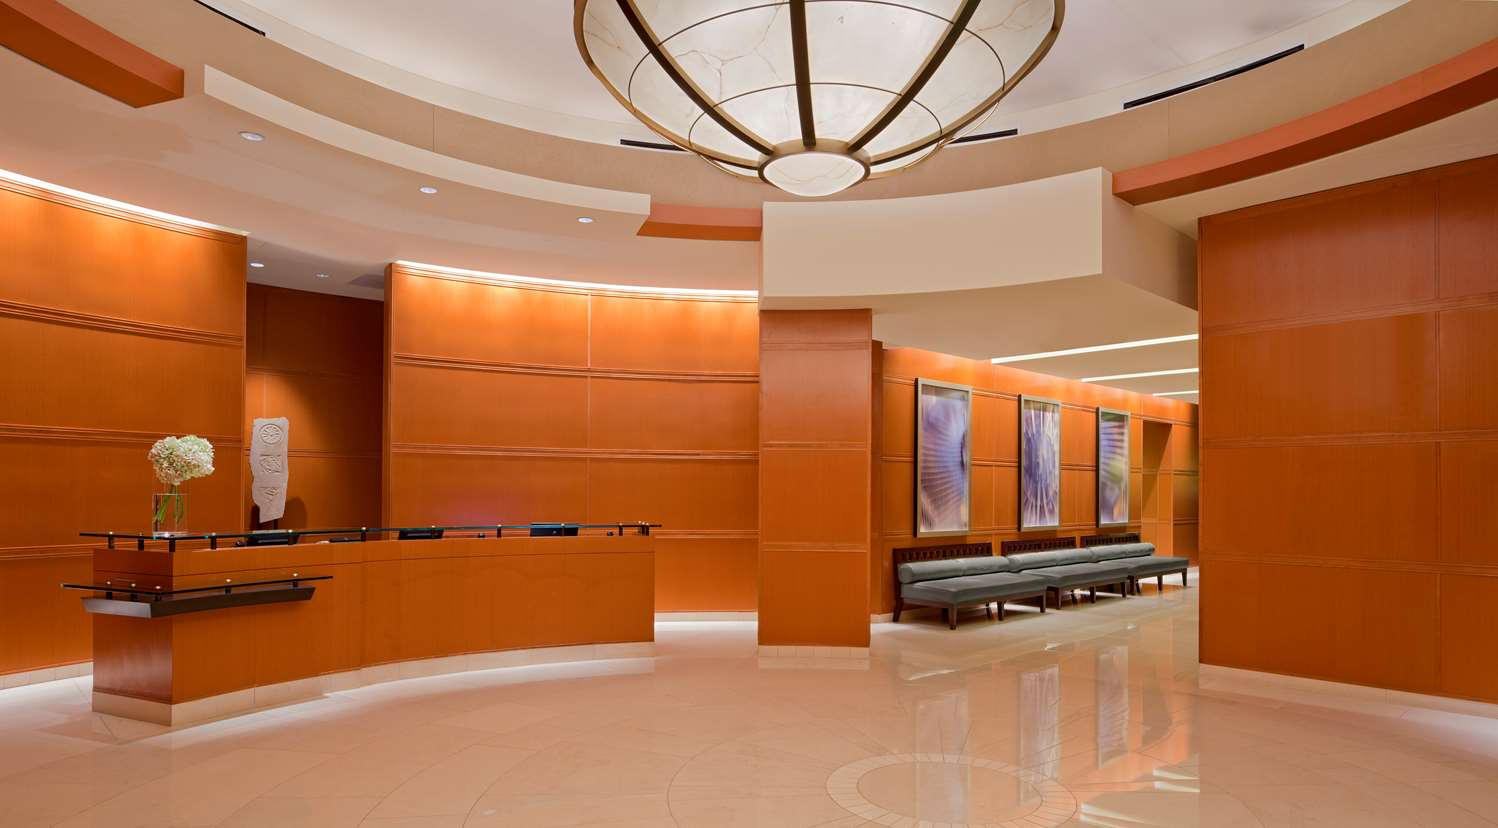 Grand Hyatt Hotel Dfw Airport Dallas Tx See Discounts